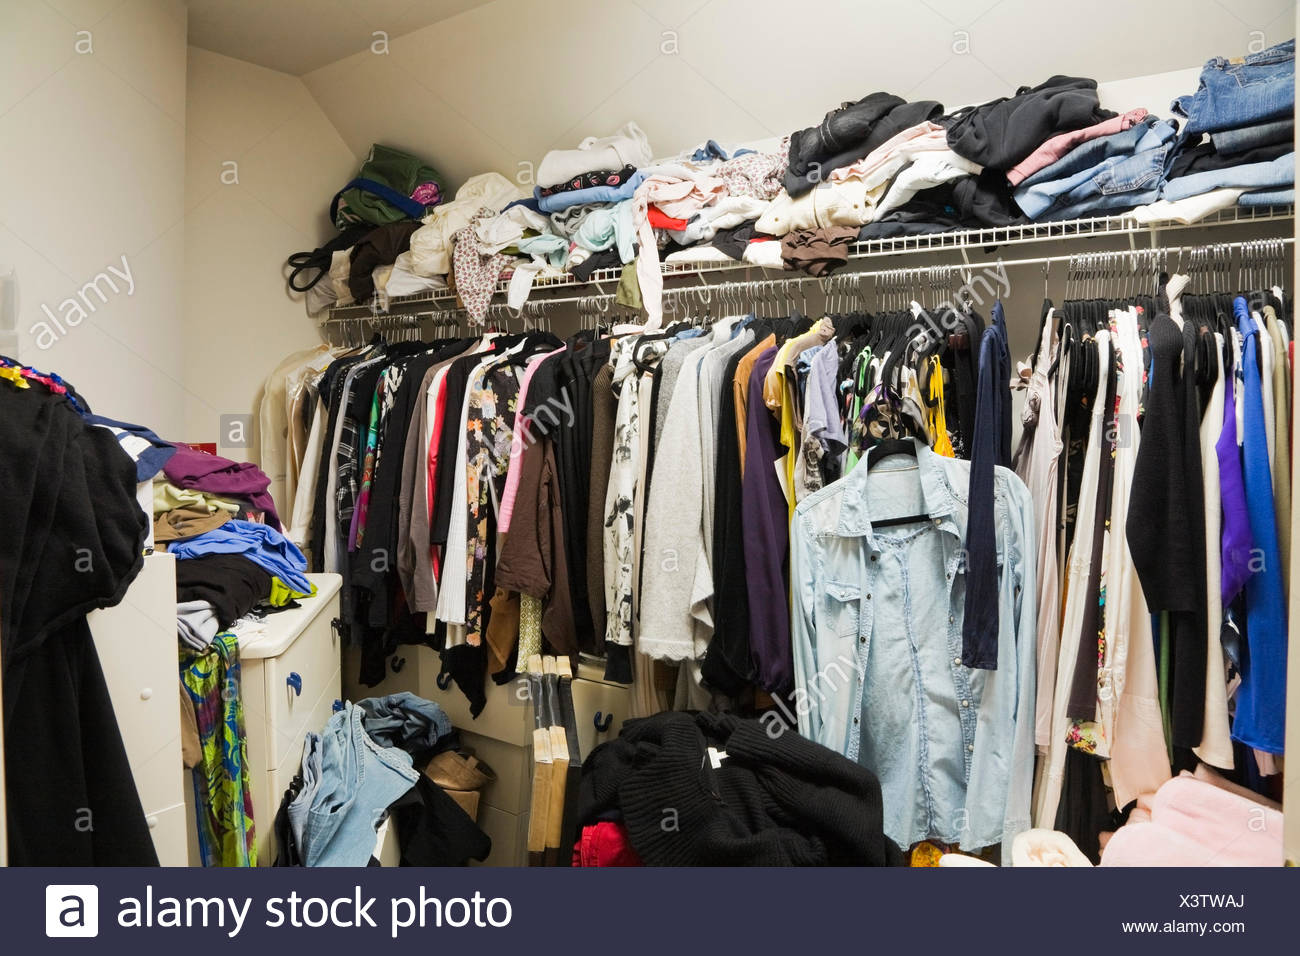 Walk-in closet filled with woman's clothes inside a luxurious cottage style residential home, Montreal, Quebec, Canada - Stock Image